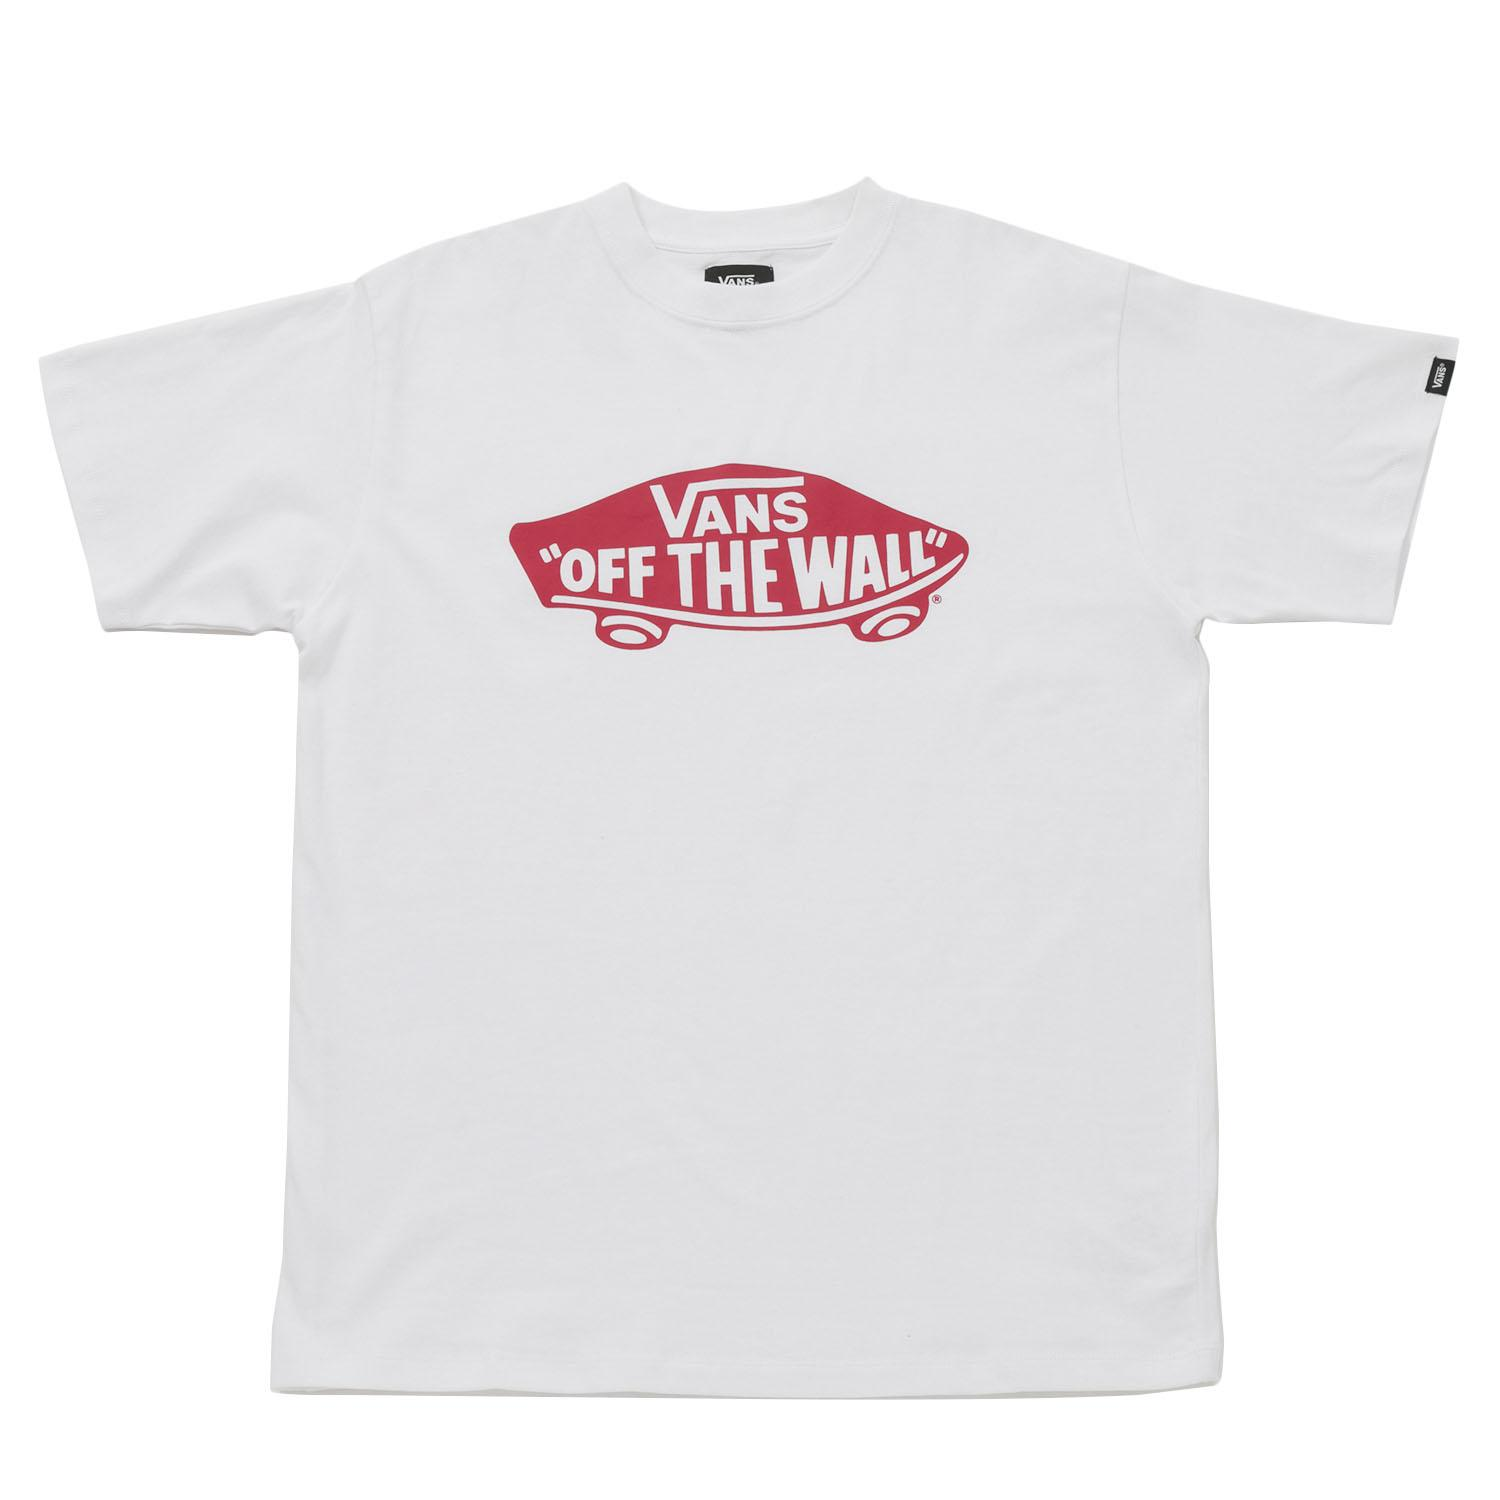 【VANSアパレル】 ヴァンズ Tシャツ SK8 DECK BASIC S/S-TEE VANS-03ABC WHT/RED